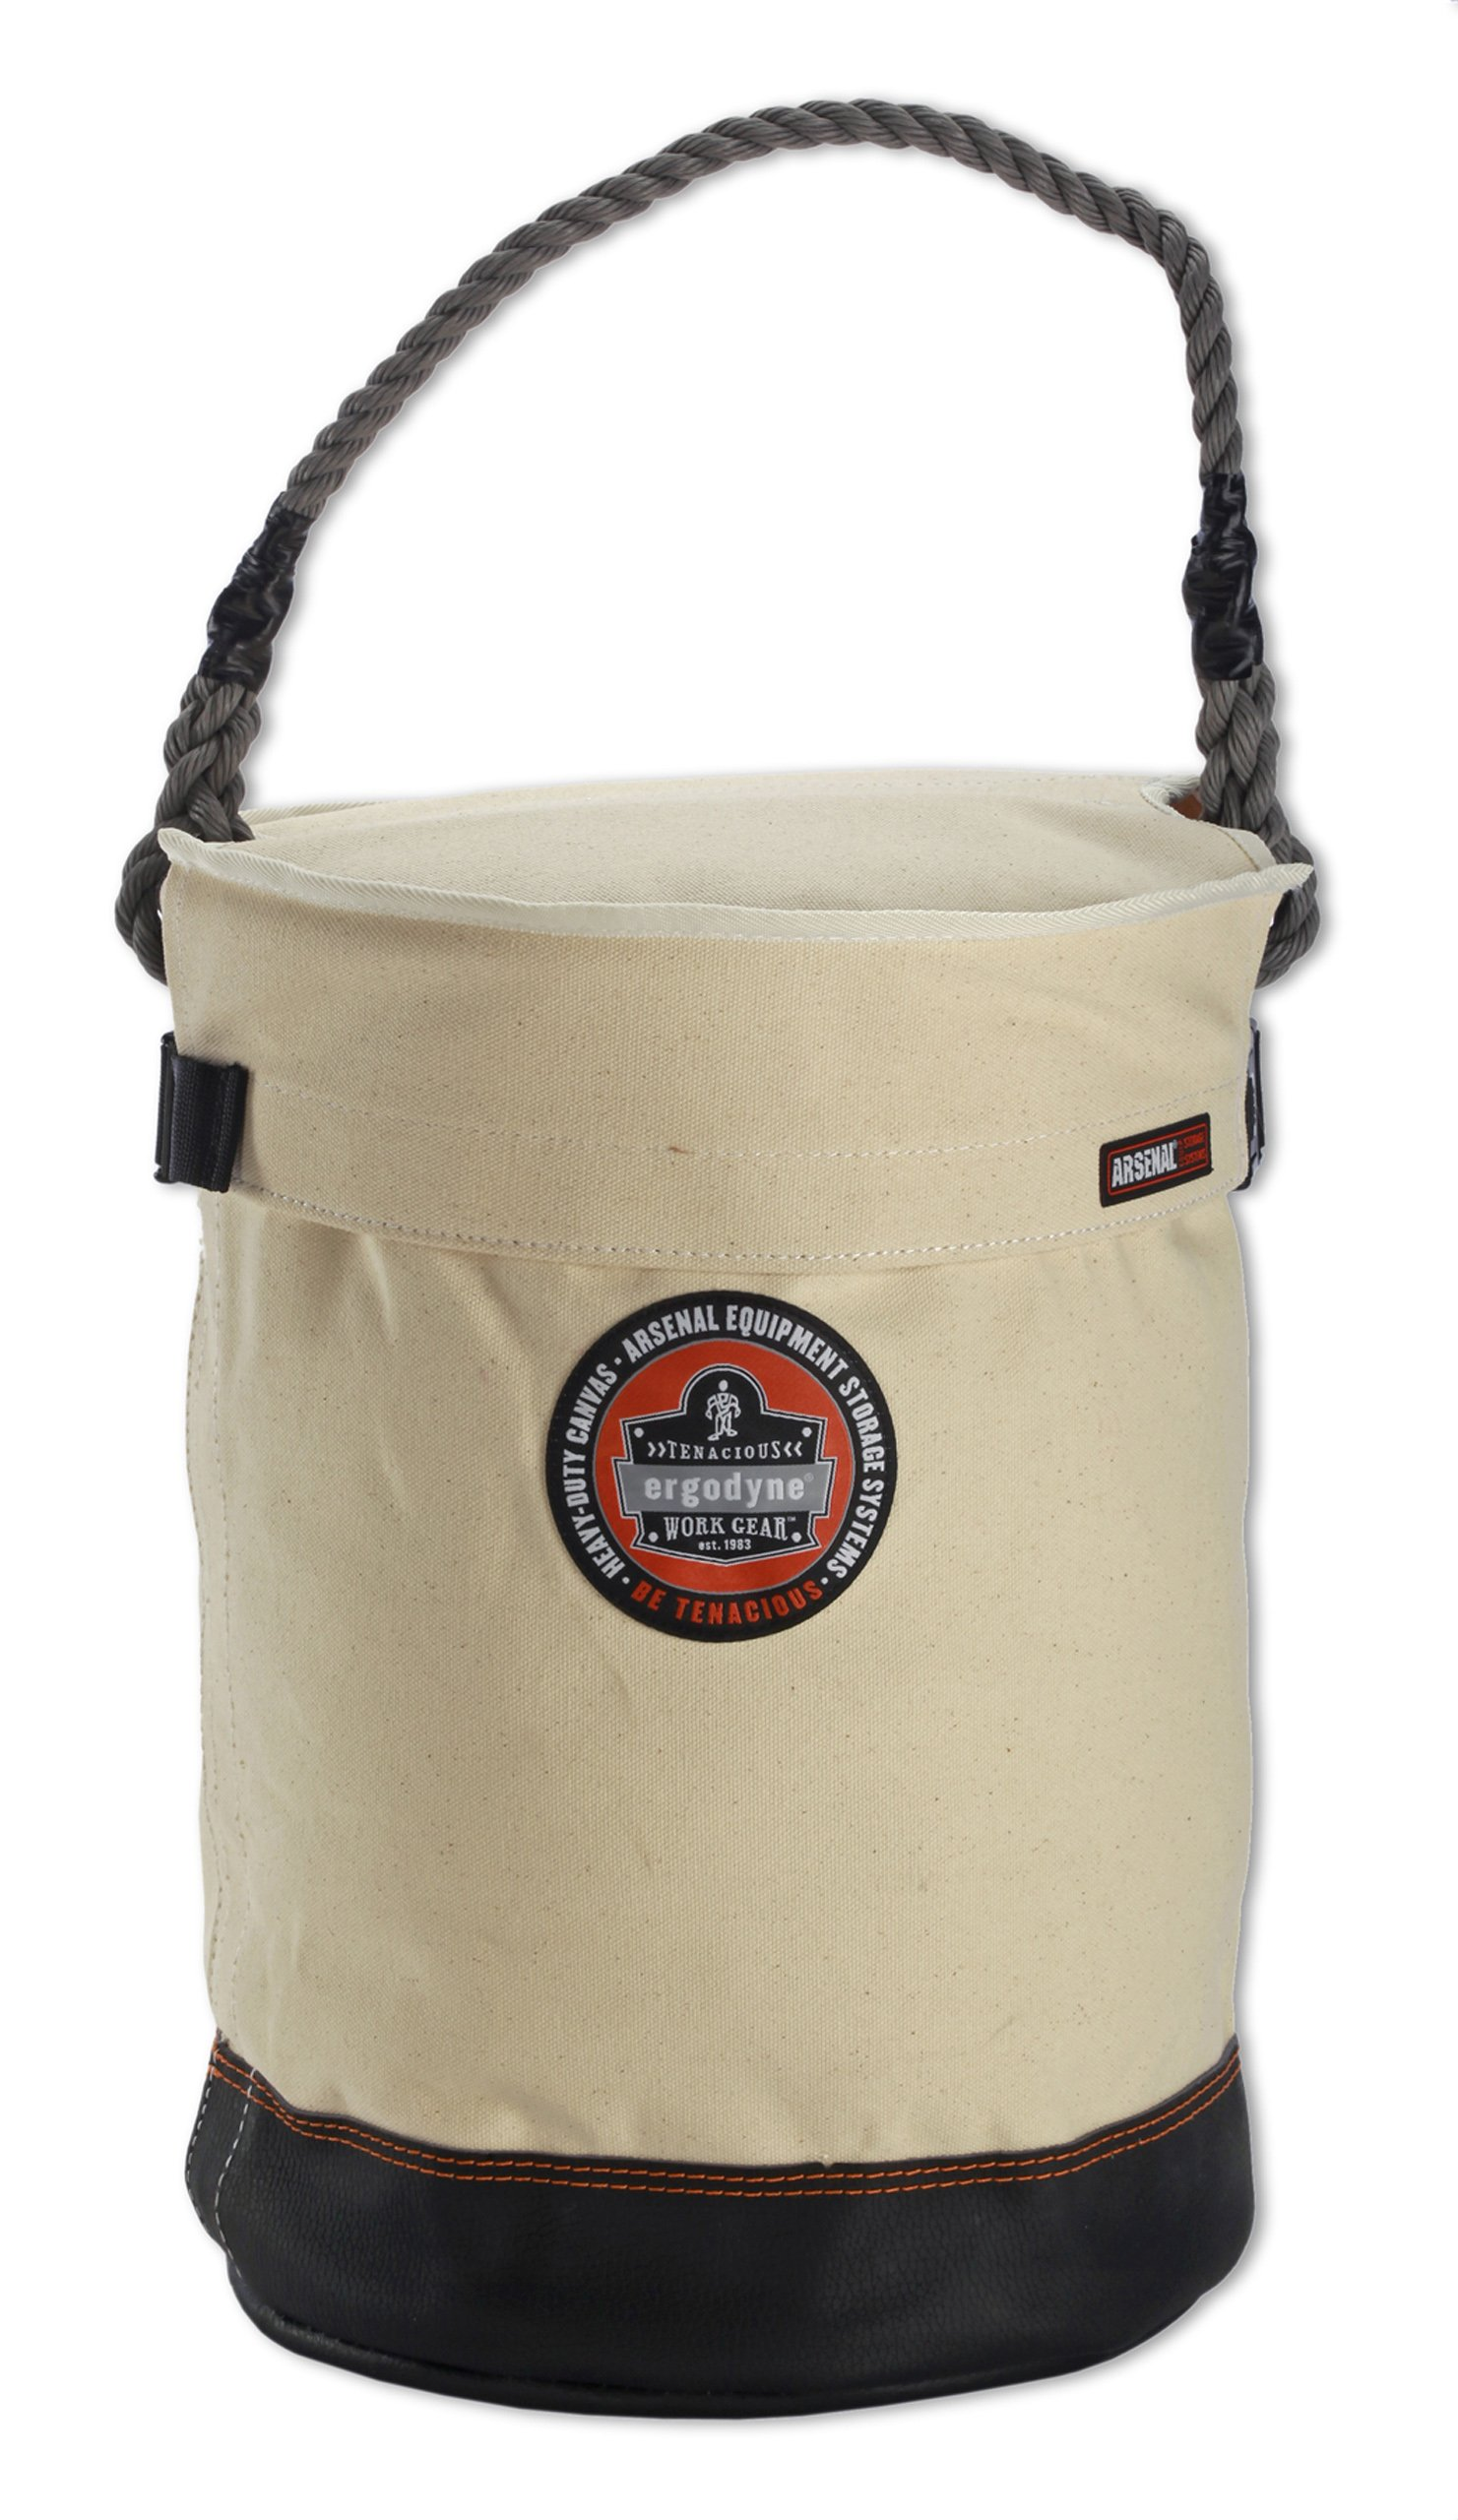 Ergodyne Arsenal 5730T Leather Bottom Tool Bucket with Cover